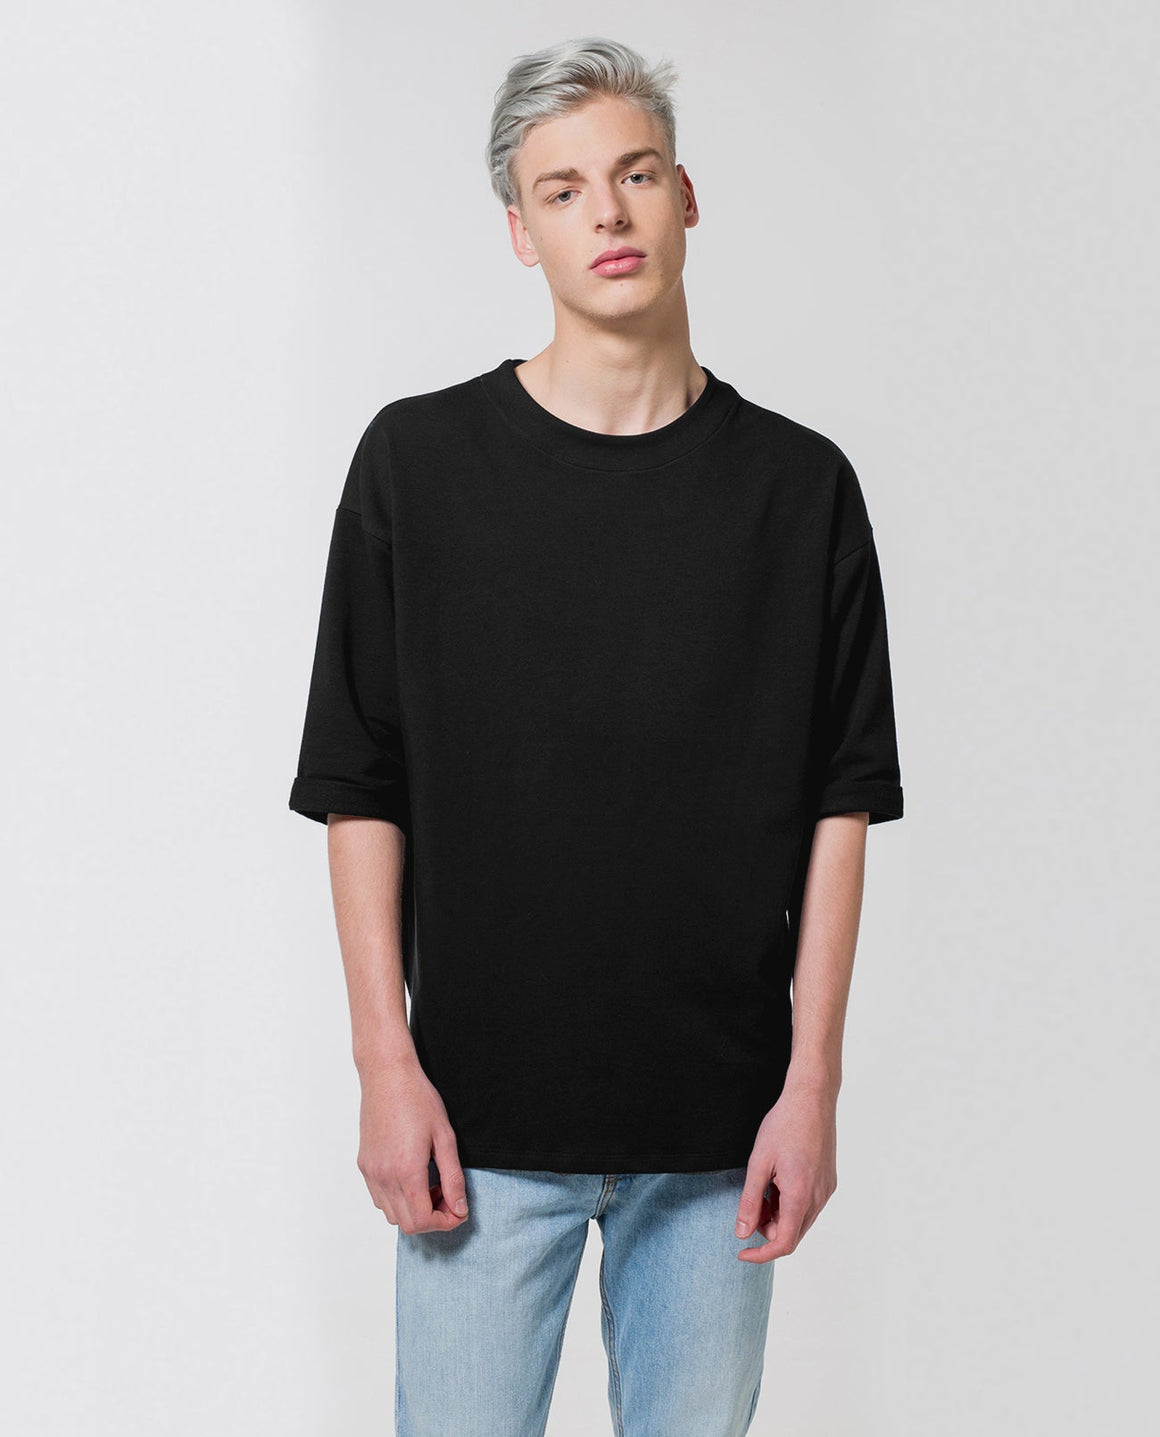 Sweatshirt with Rolled Sleeves Black - Local Pattern